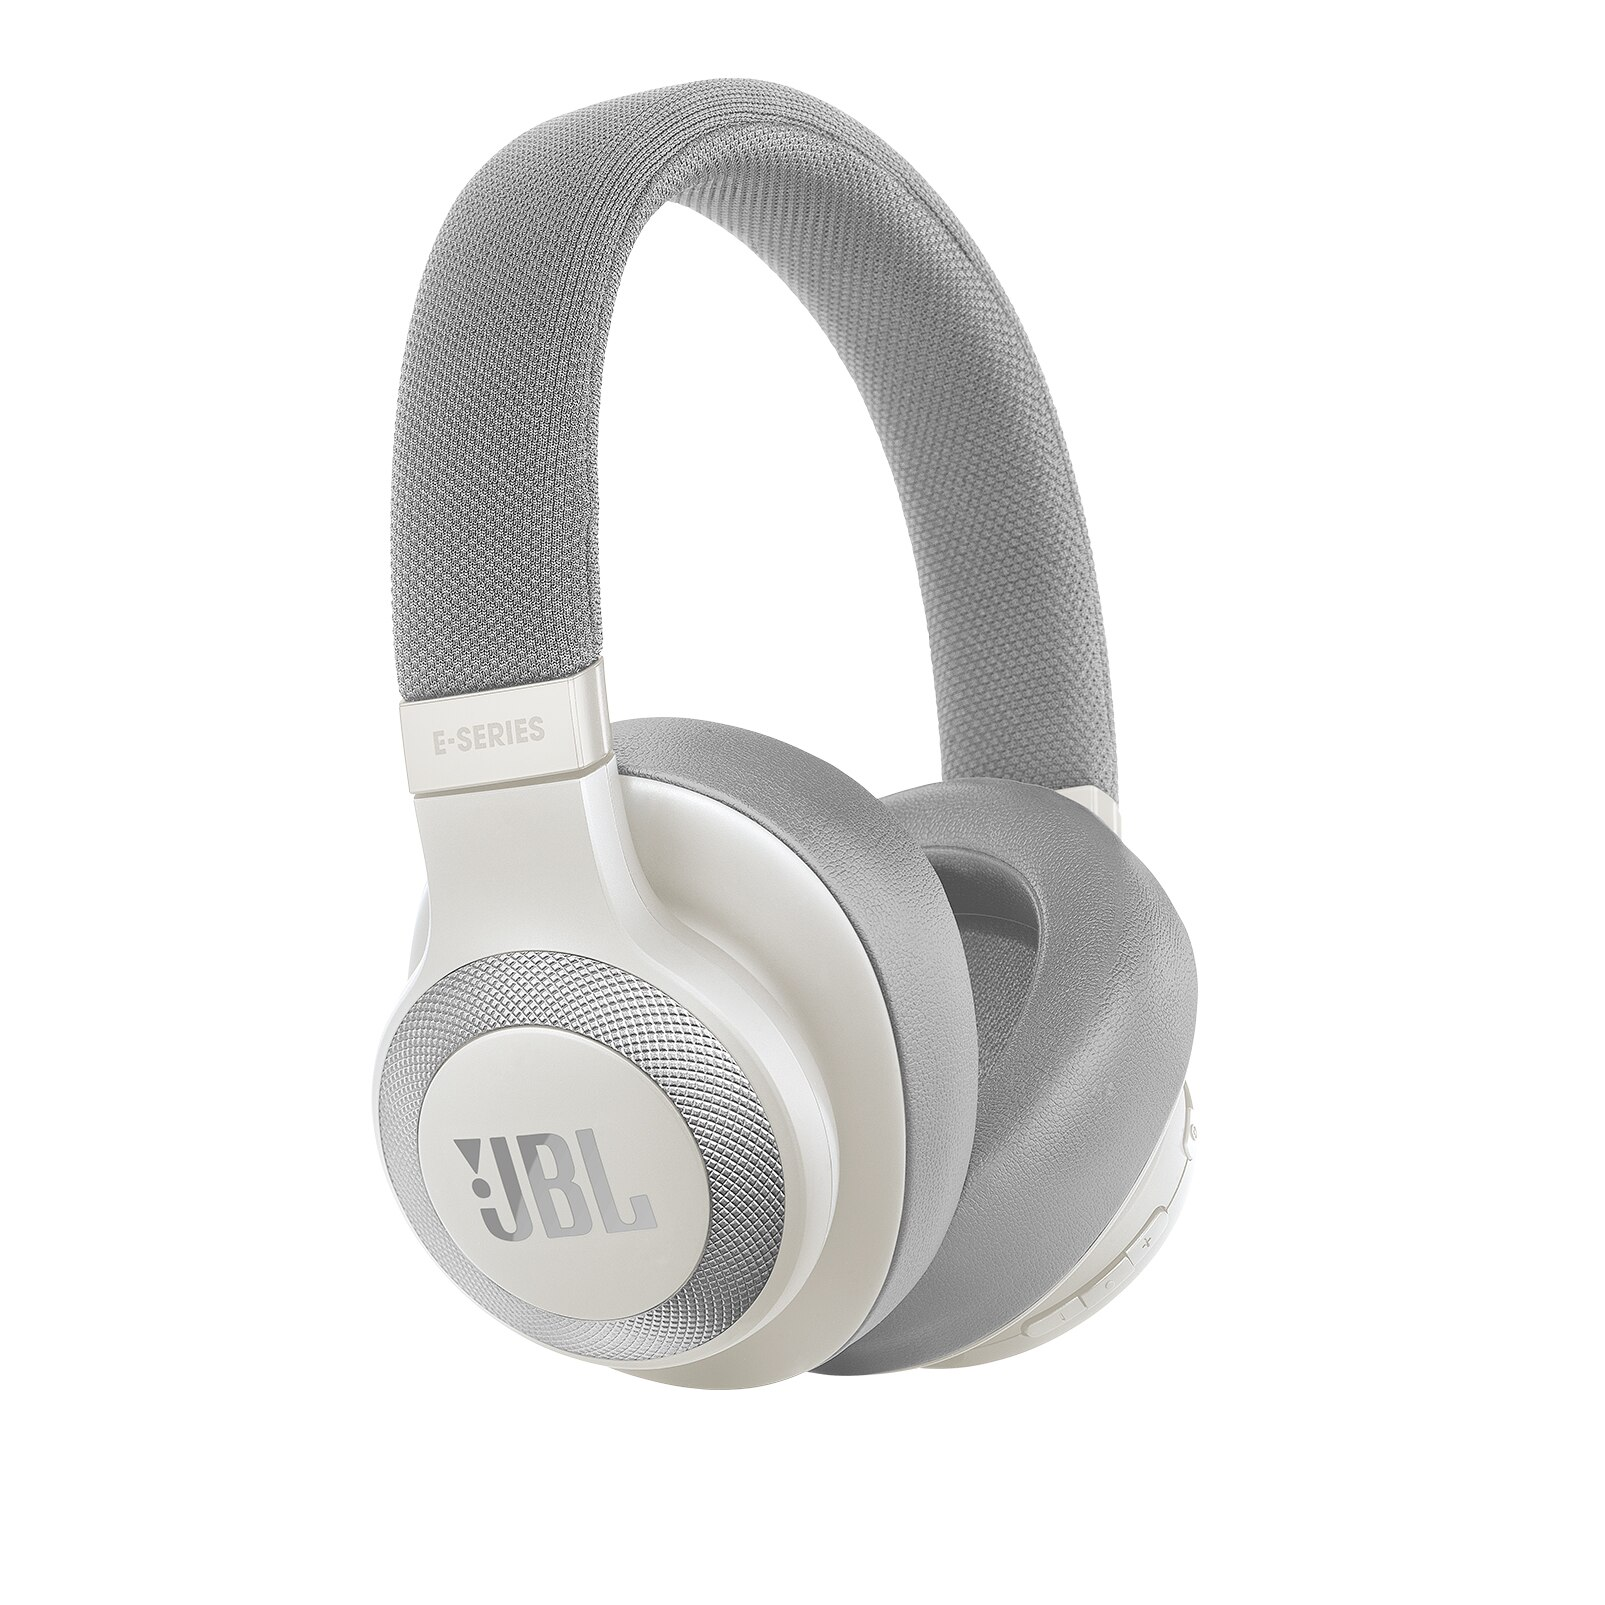 Fotografie Casti audio JBL E65BTNC, wireless, noise canceling, alb